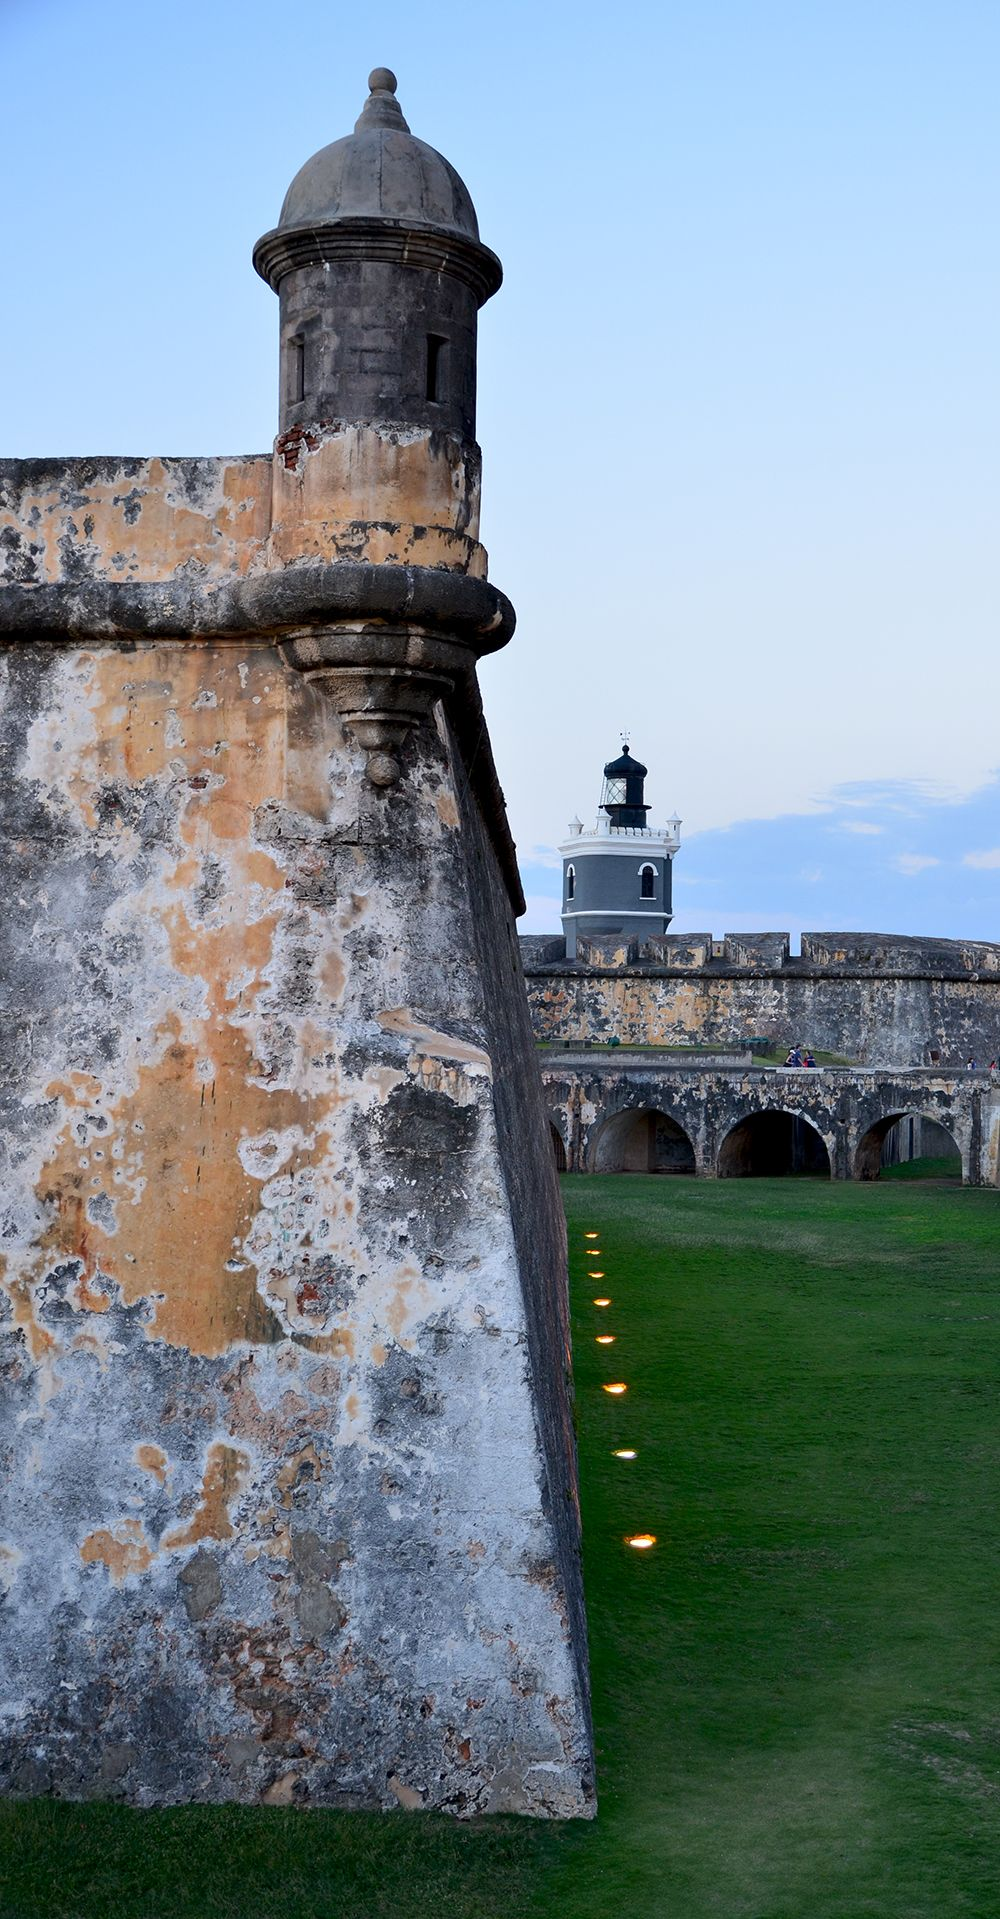 El Morro Travel Photography by Charity Beth Long